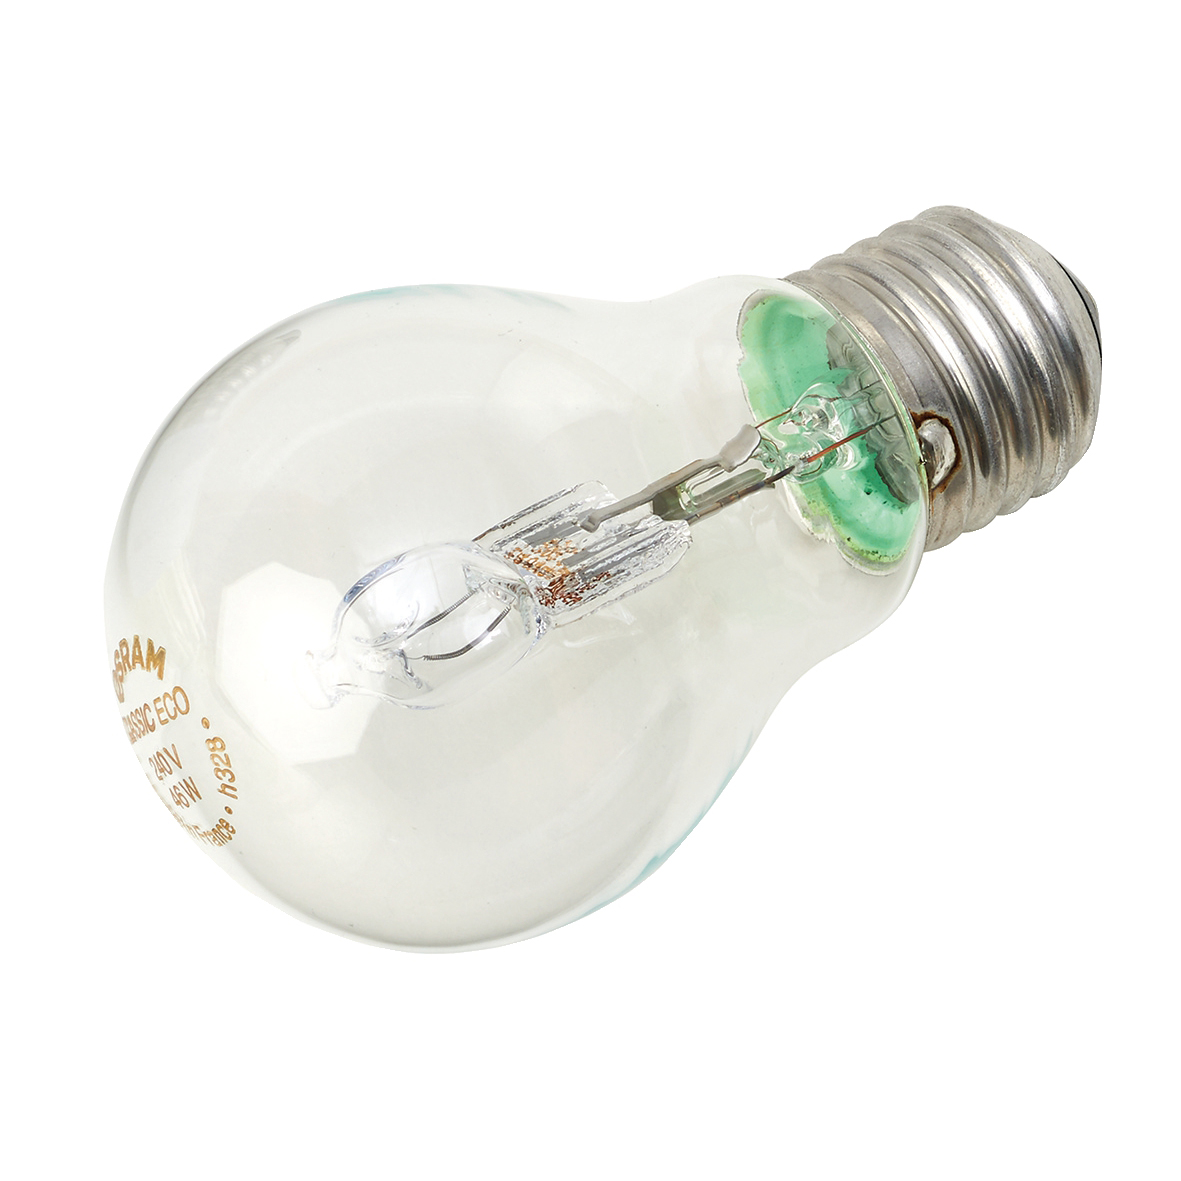 Image for GE Bulb Halogen 42W E27 GLS Screw Fitting Energy Saving Dimmable Clear Ref 79422